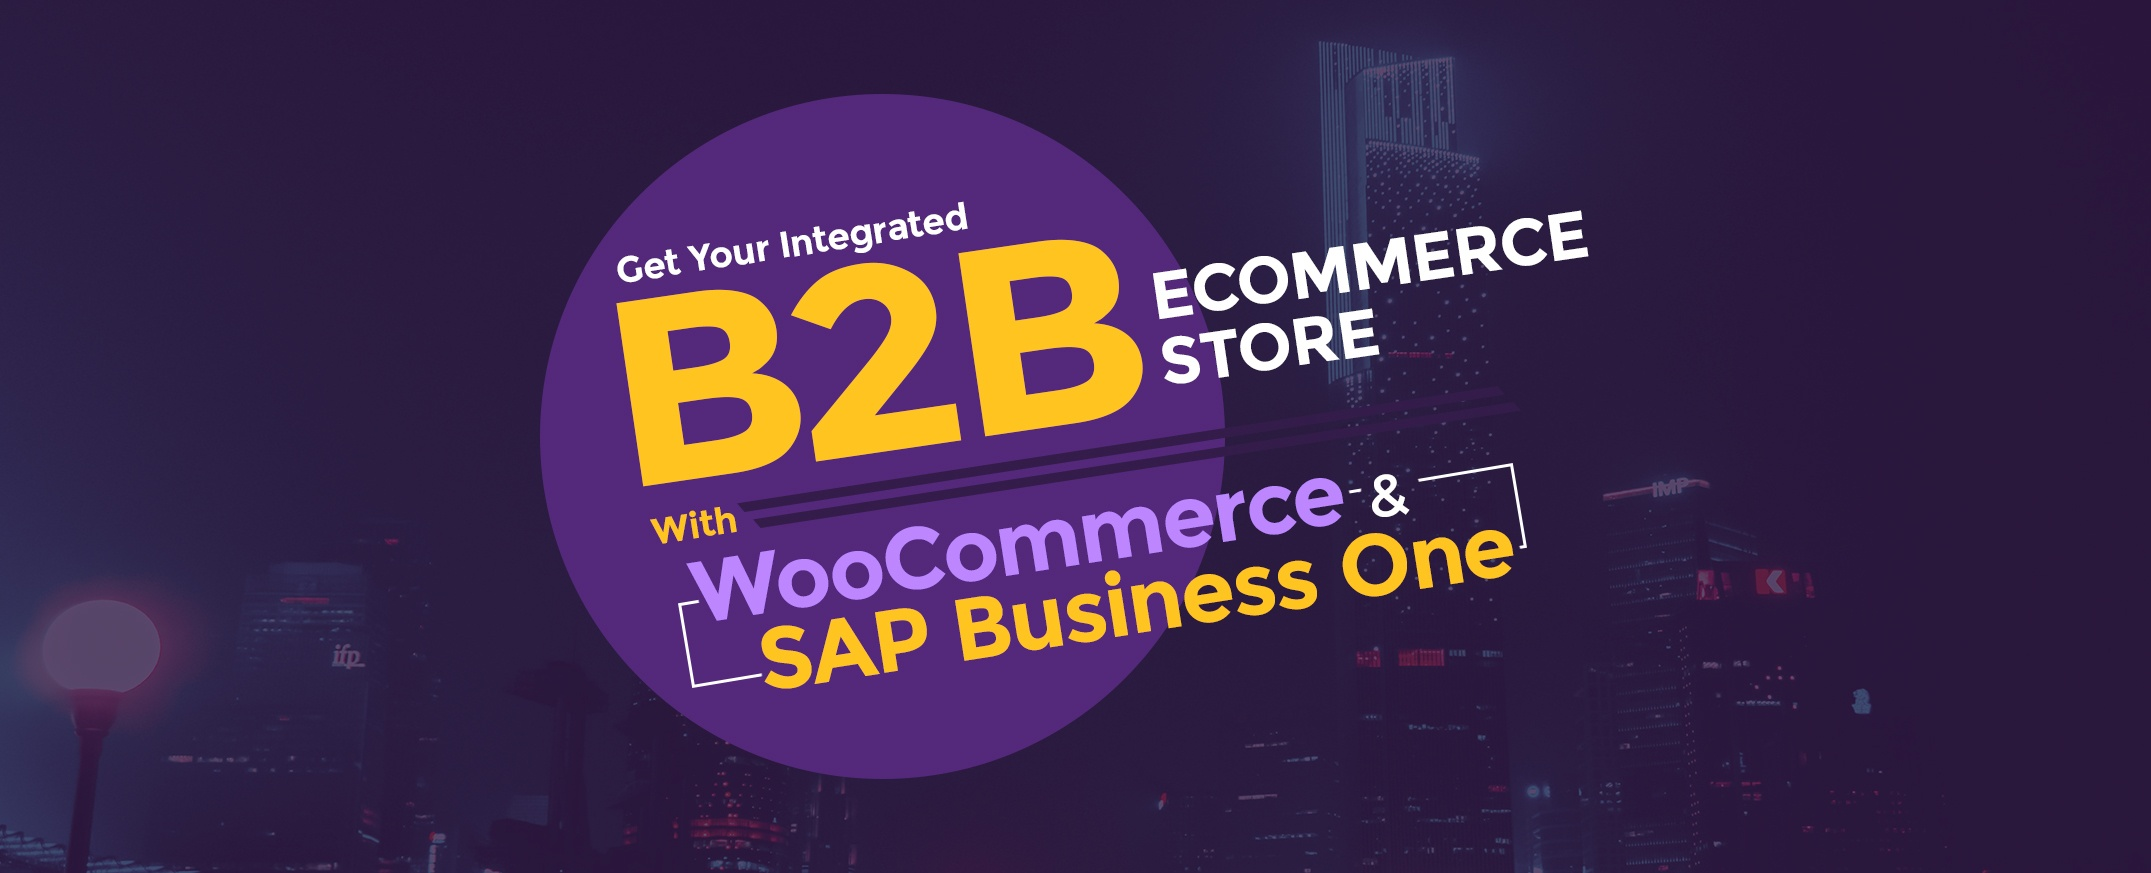 Get-Your-Integrated-B2B-E-commerce-Store-With-WooCommerce-and-SAP-Business-One